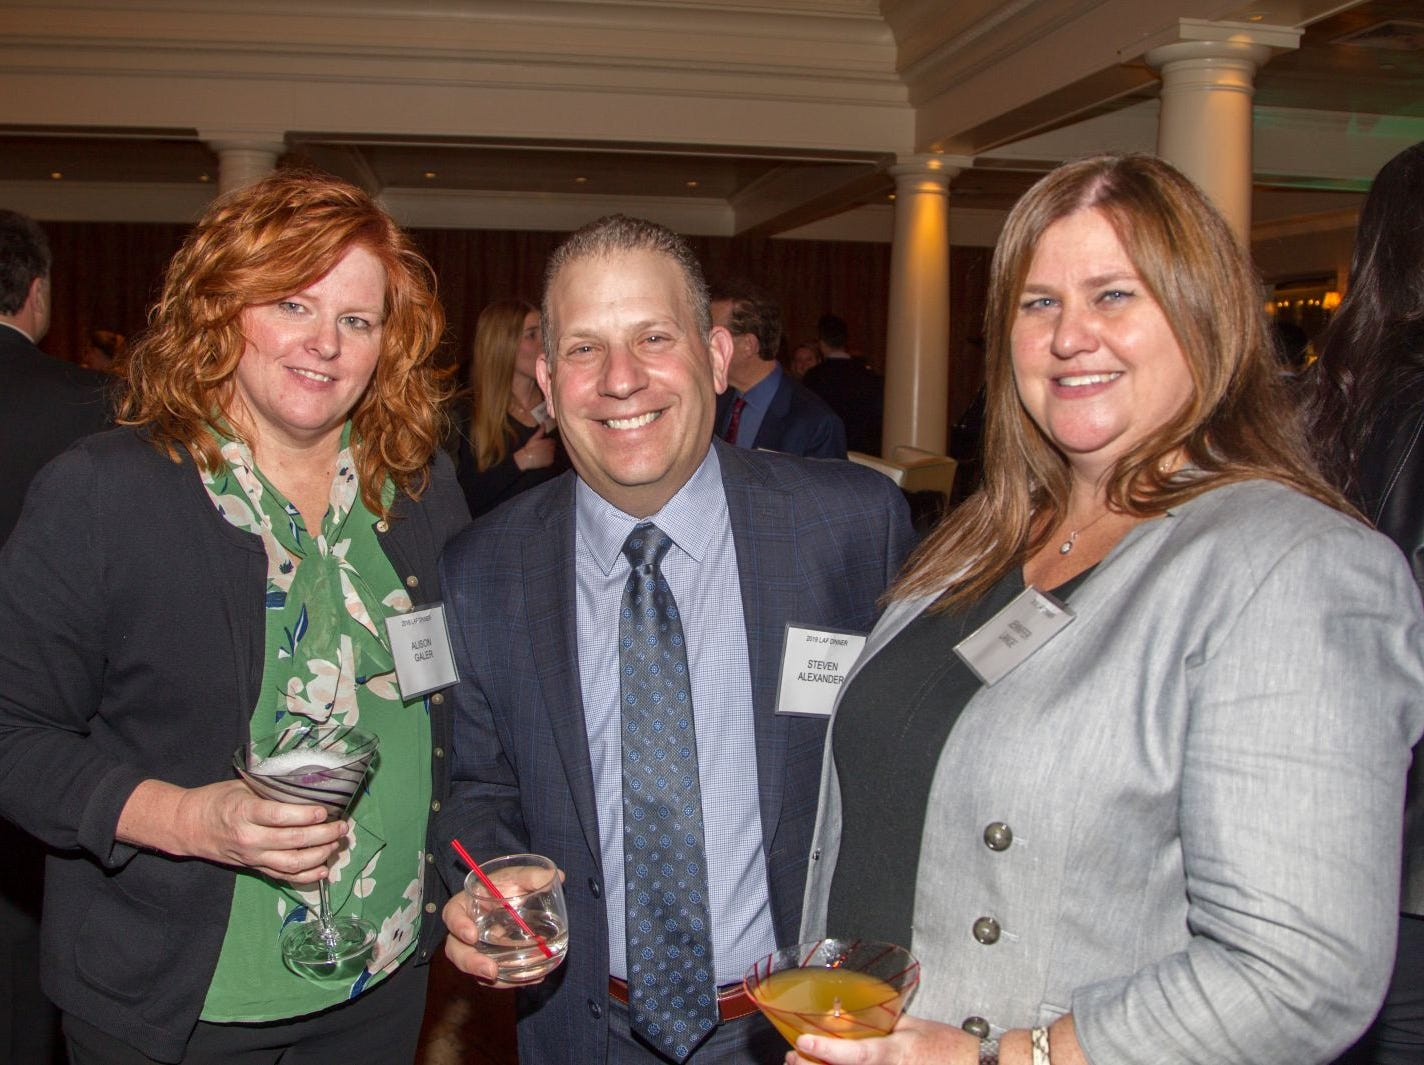 Alison Galer, Steven Alexander, Jennifer Lange. Eva's Village hosted its second annual Lawyers, Accountants and Financial Professionals Benefit Dinner at Westmount Country Club in Woodland Park. 02/21/2019